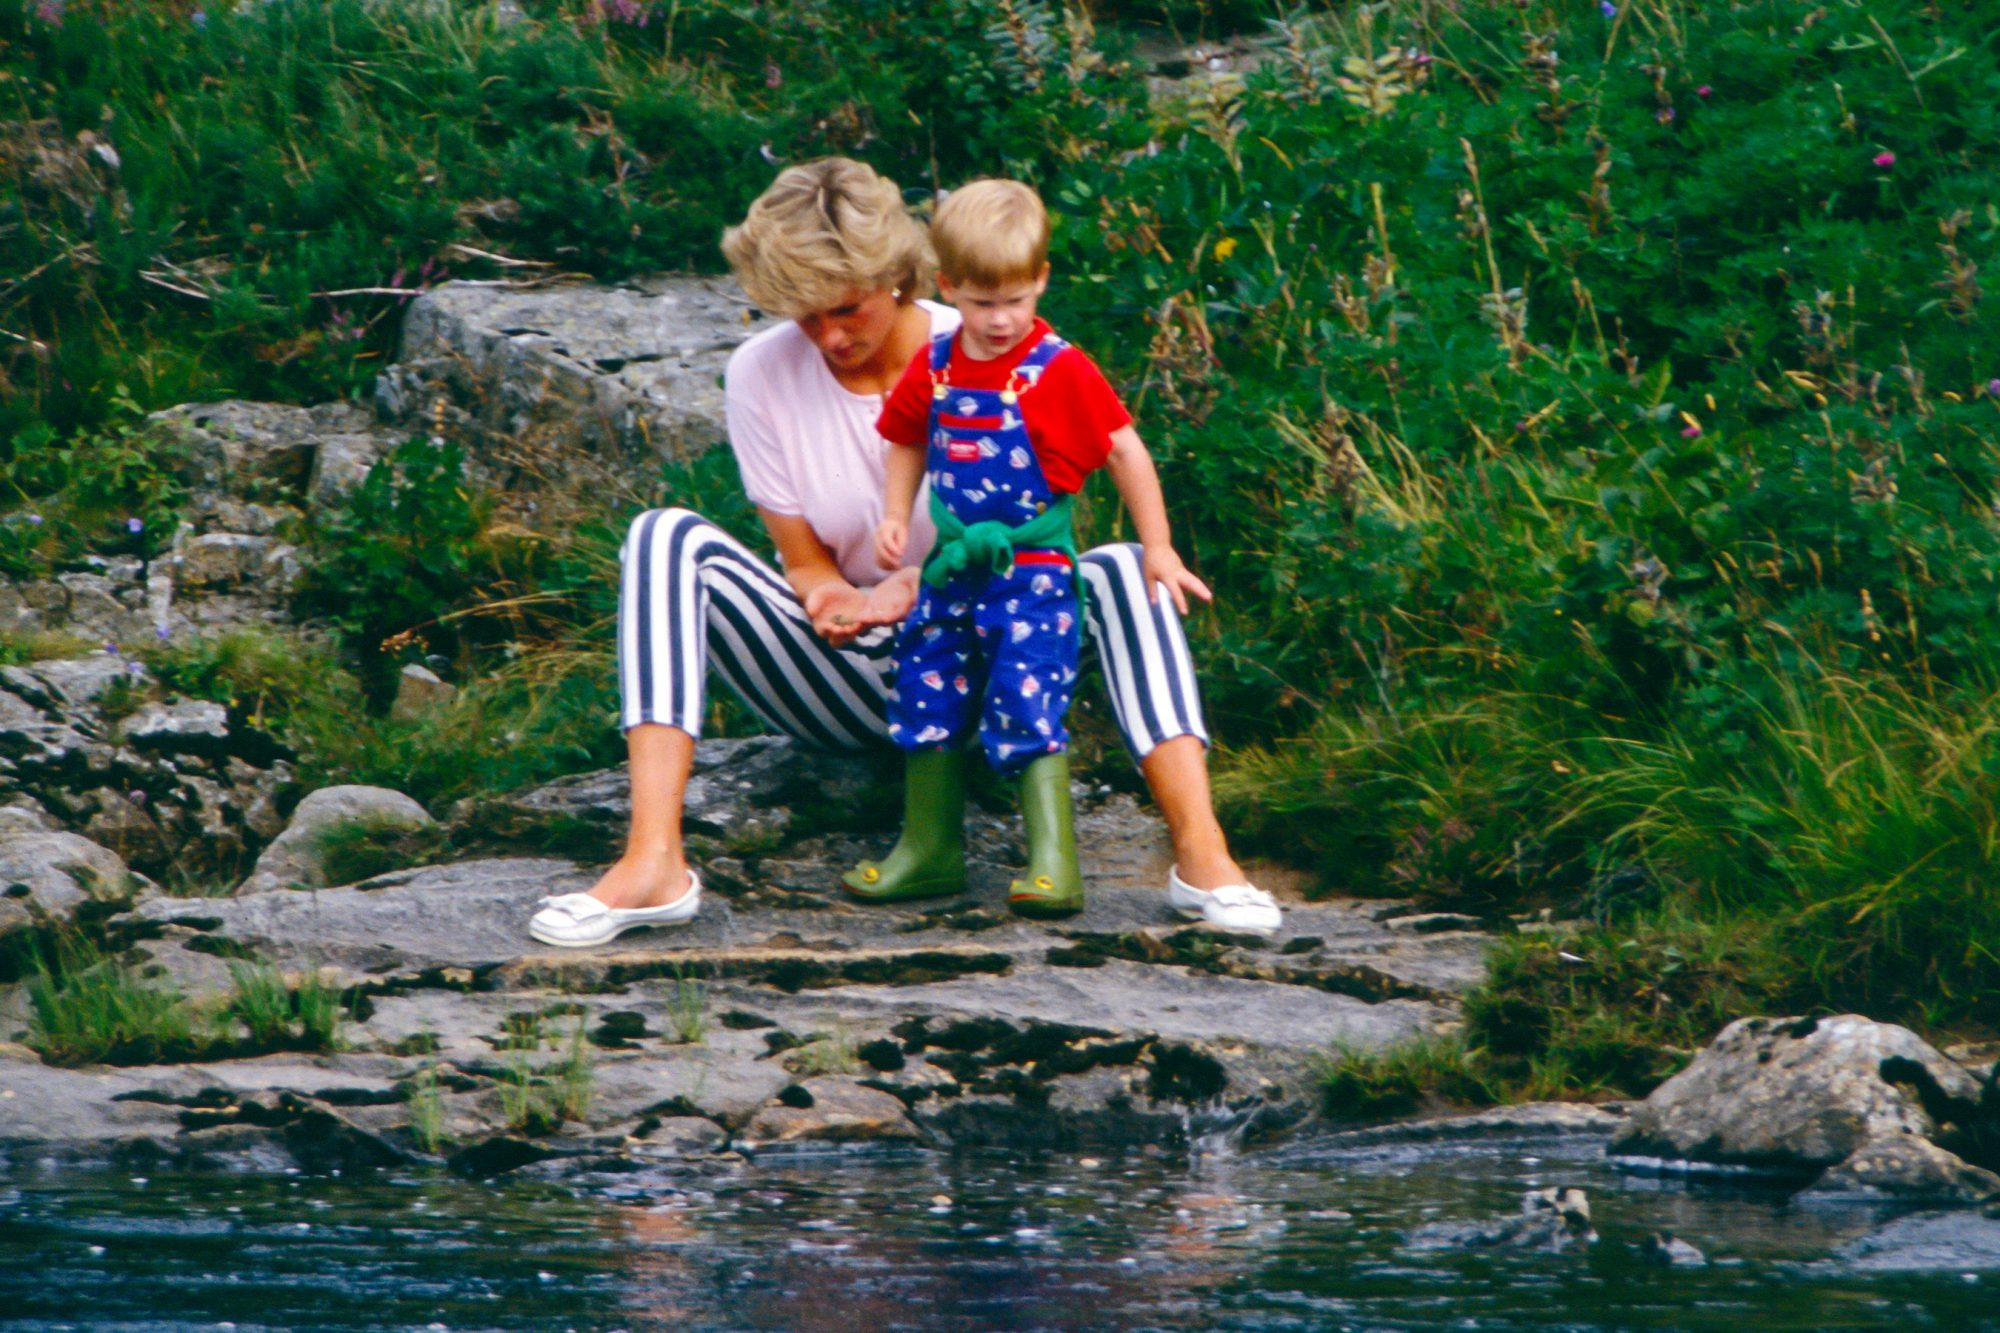 Diana, Princess of Wales, Prince William, and Prince Harry play on the banks of the River Dee, near Balmoral Castle